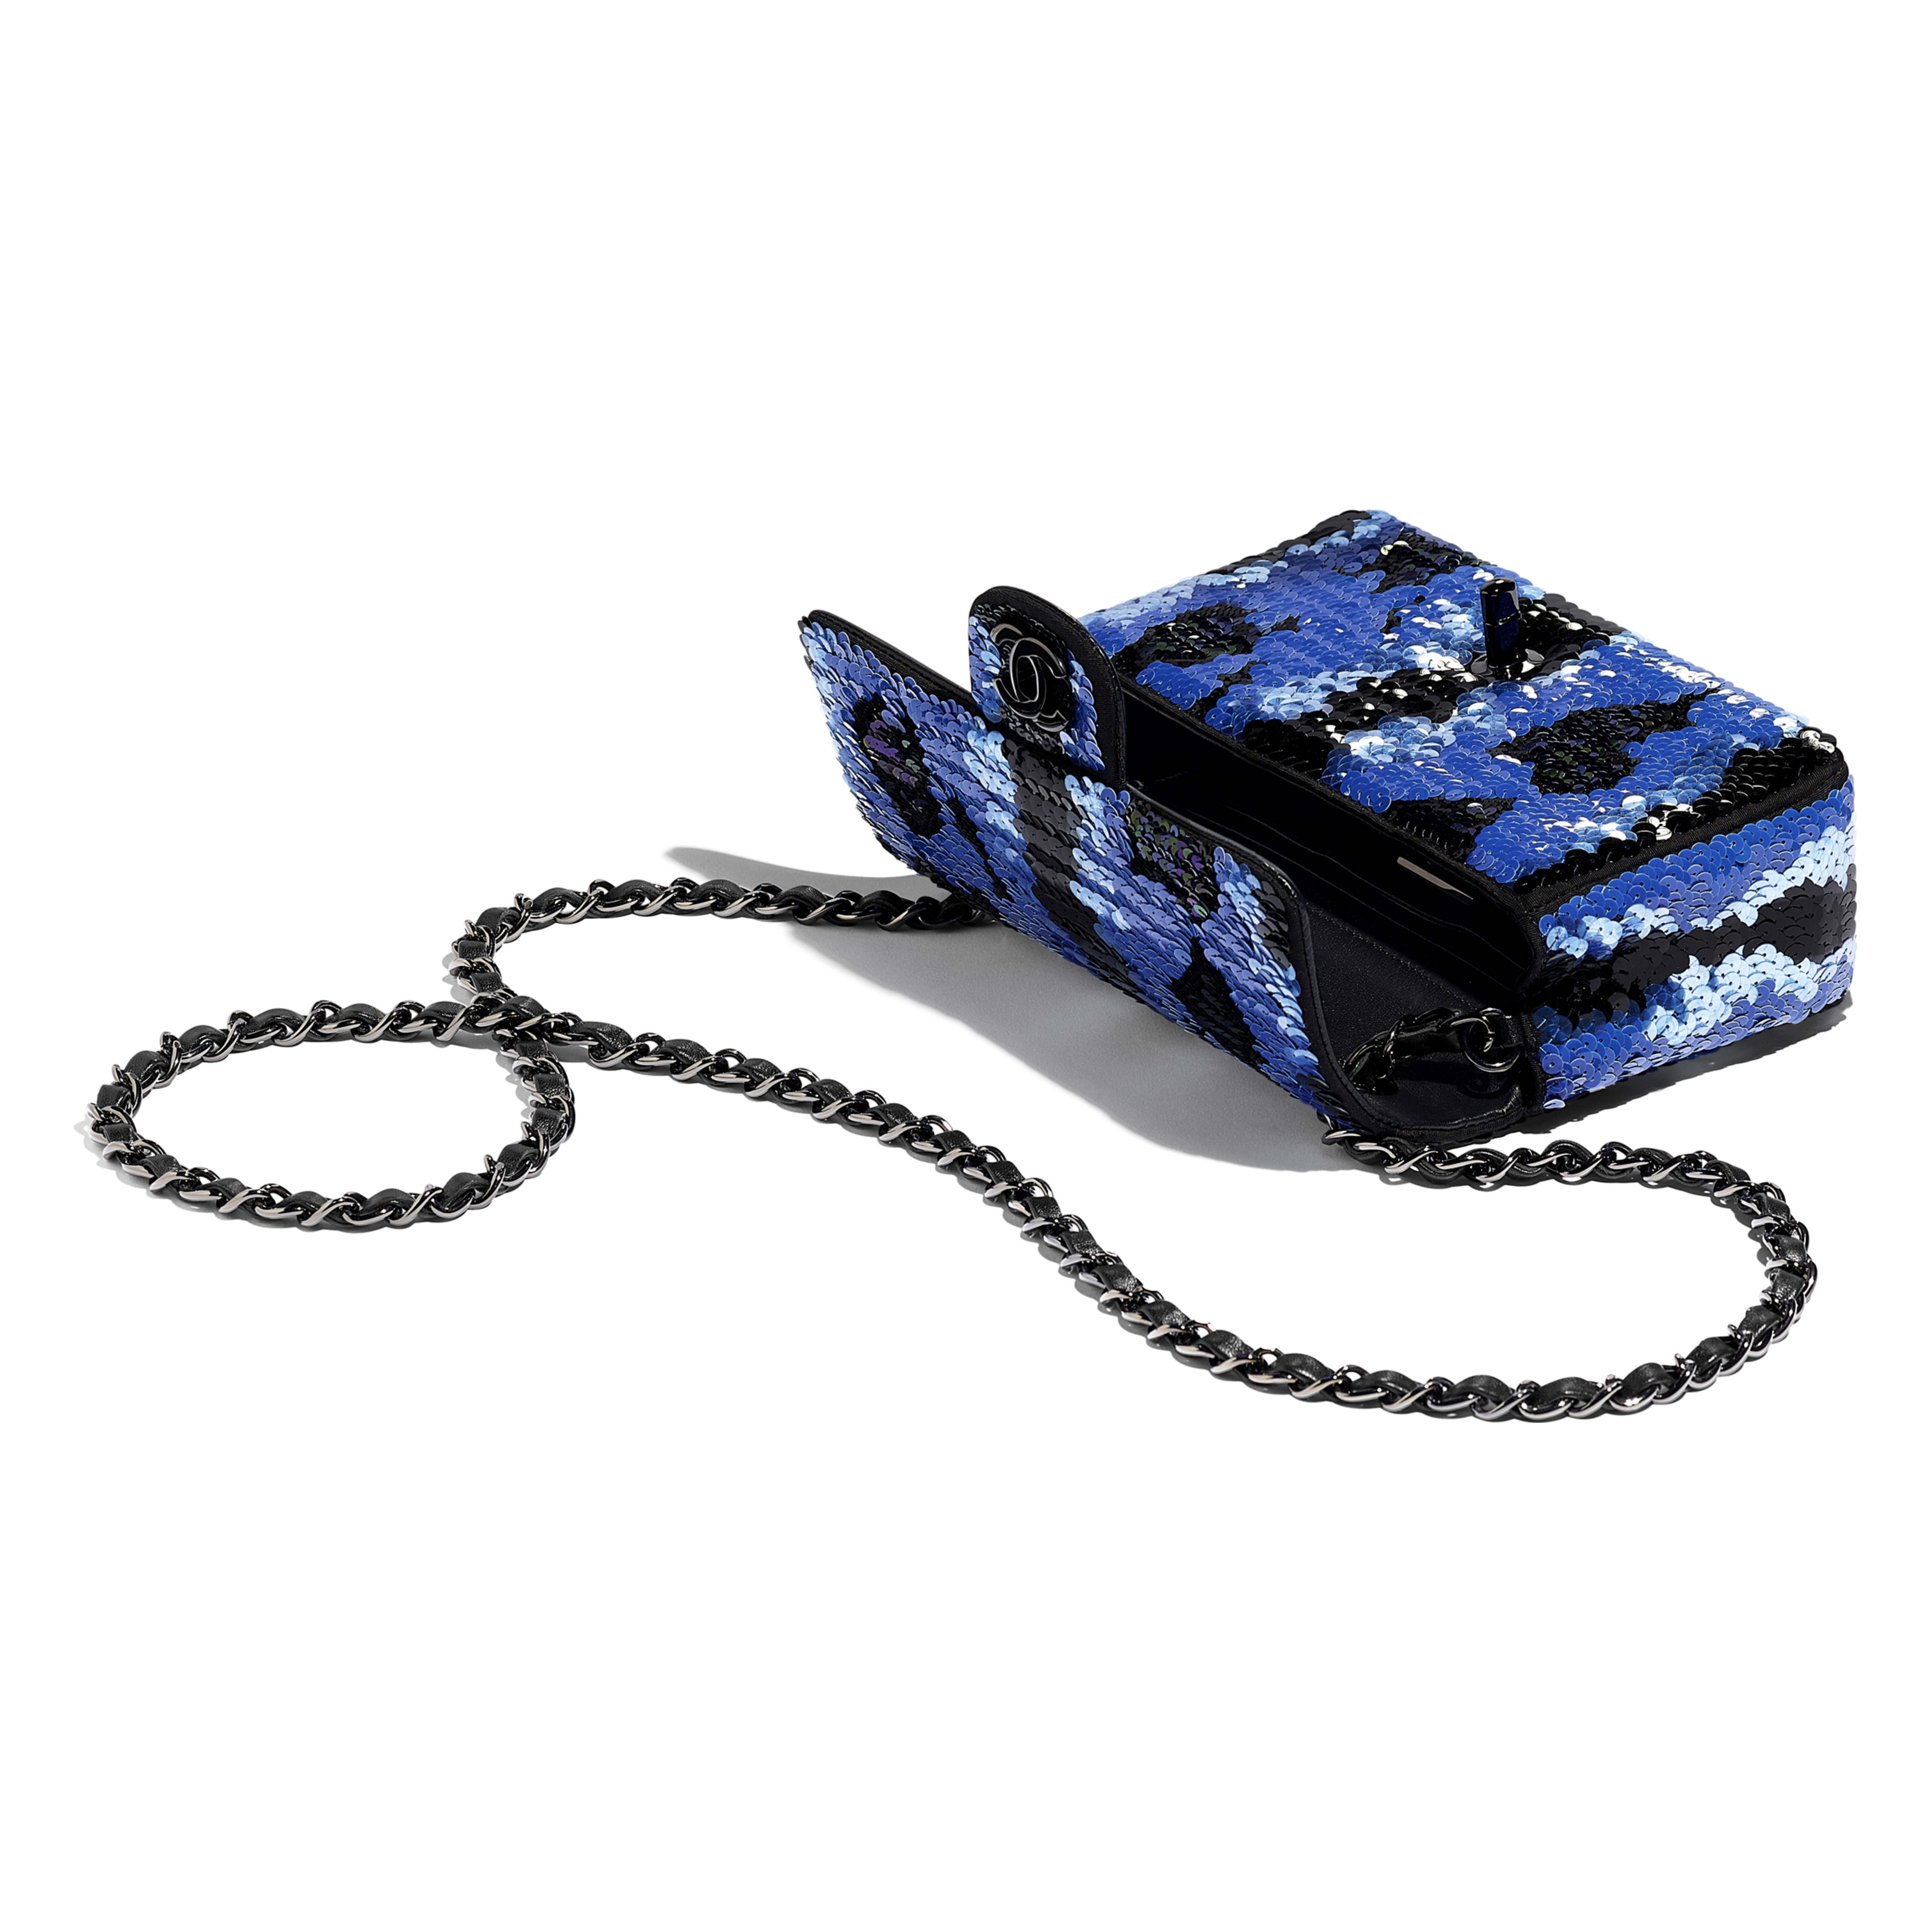 Mini Flap Bag - Blue & Black - Sequins & Black Metal - Other view - see full sized version